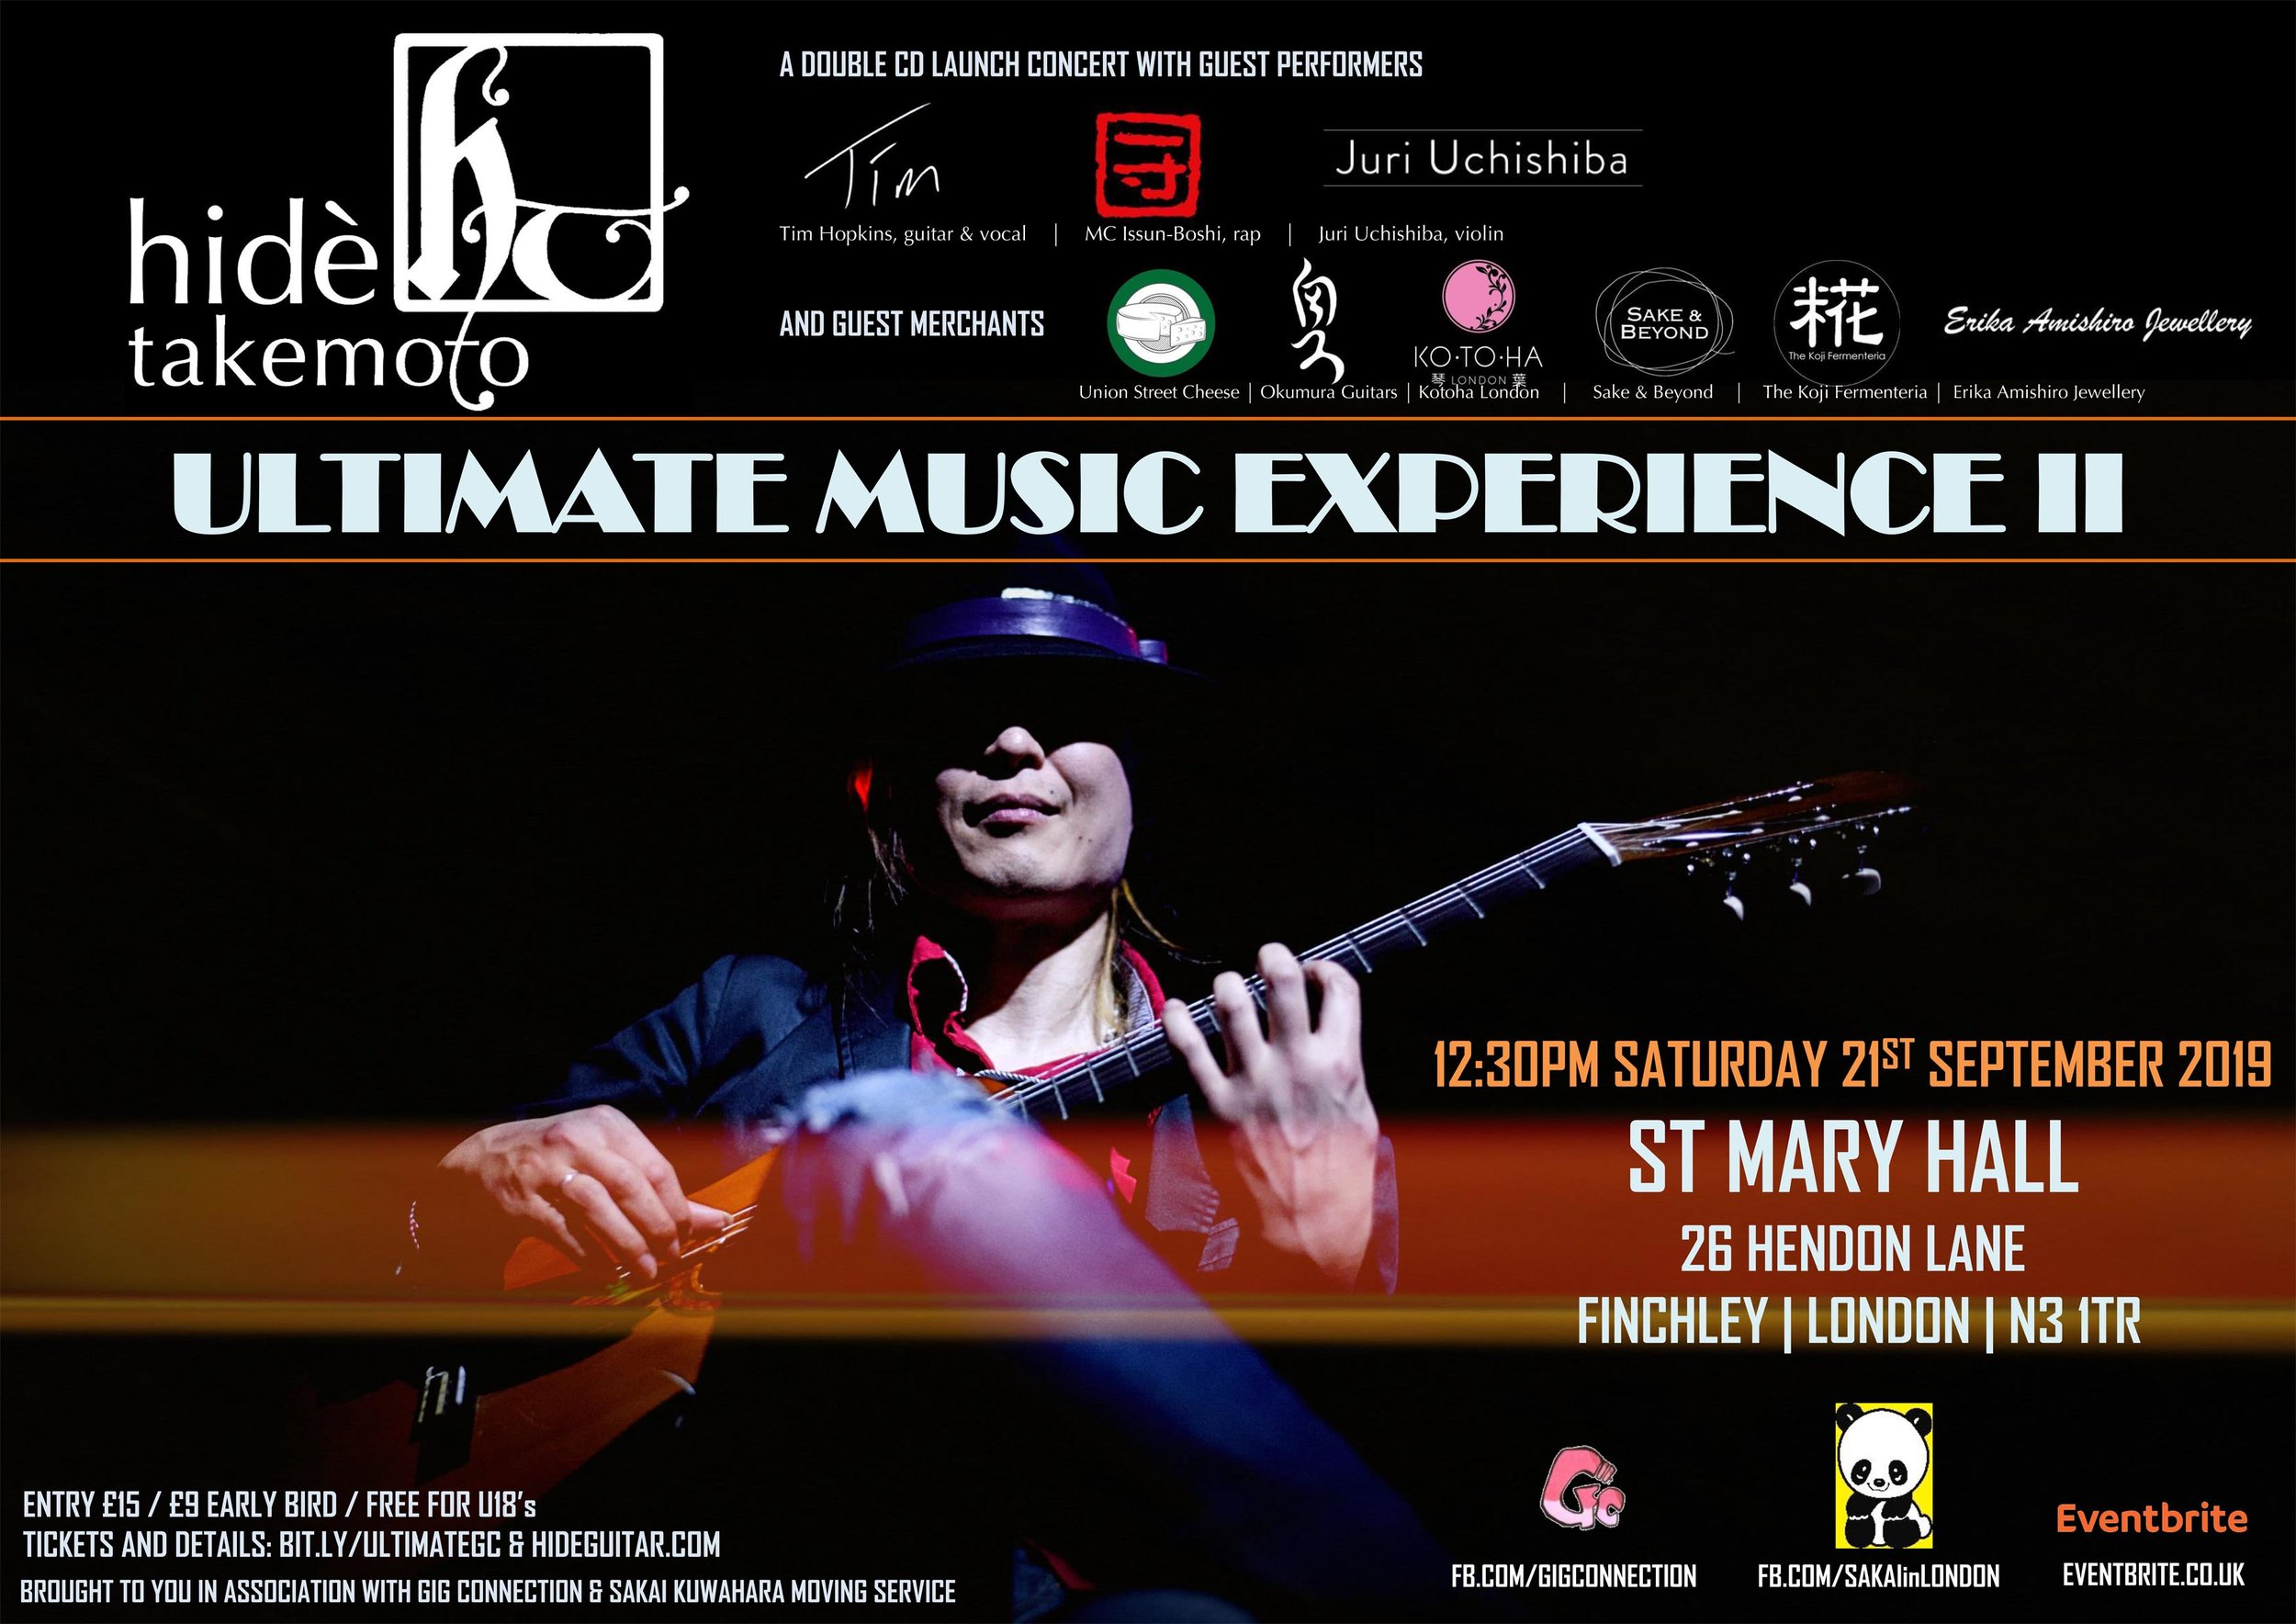 ULTIMATE MUSIC EXPERIENCE II A4.jpg